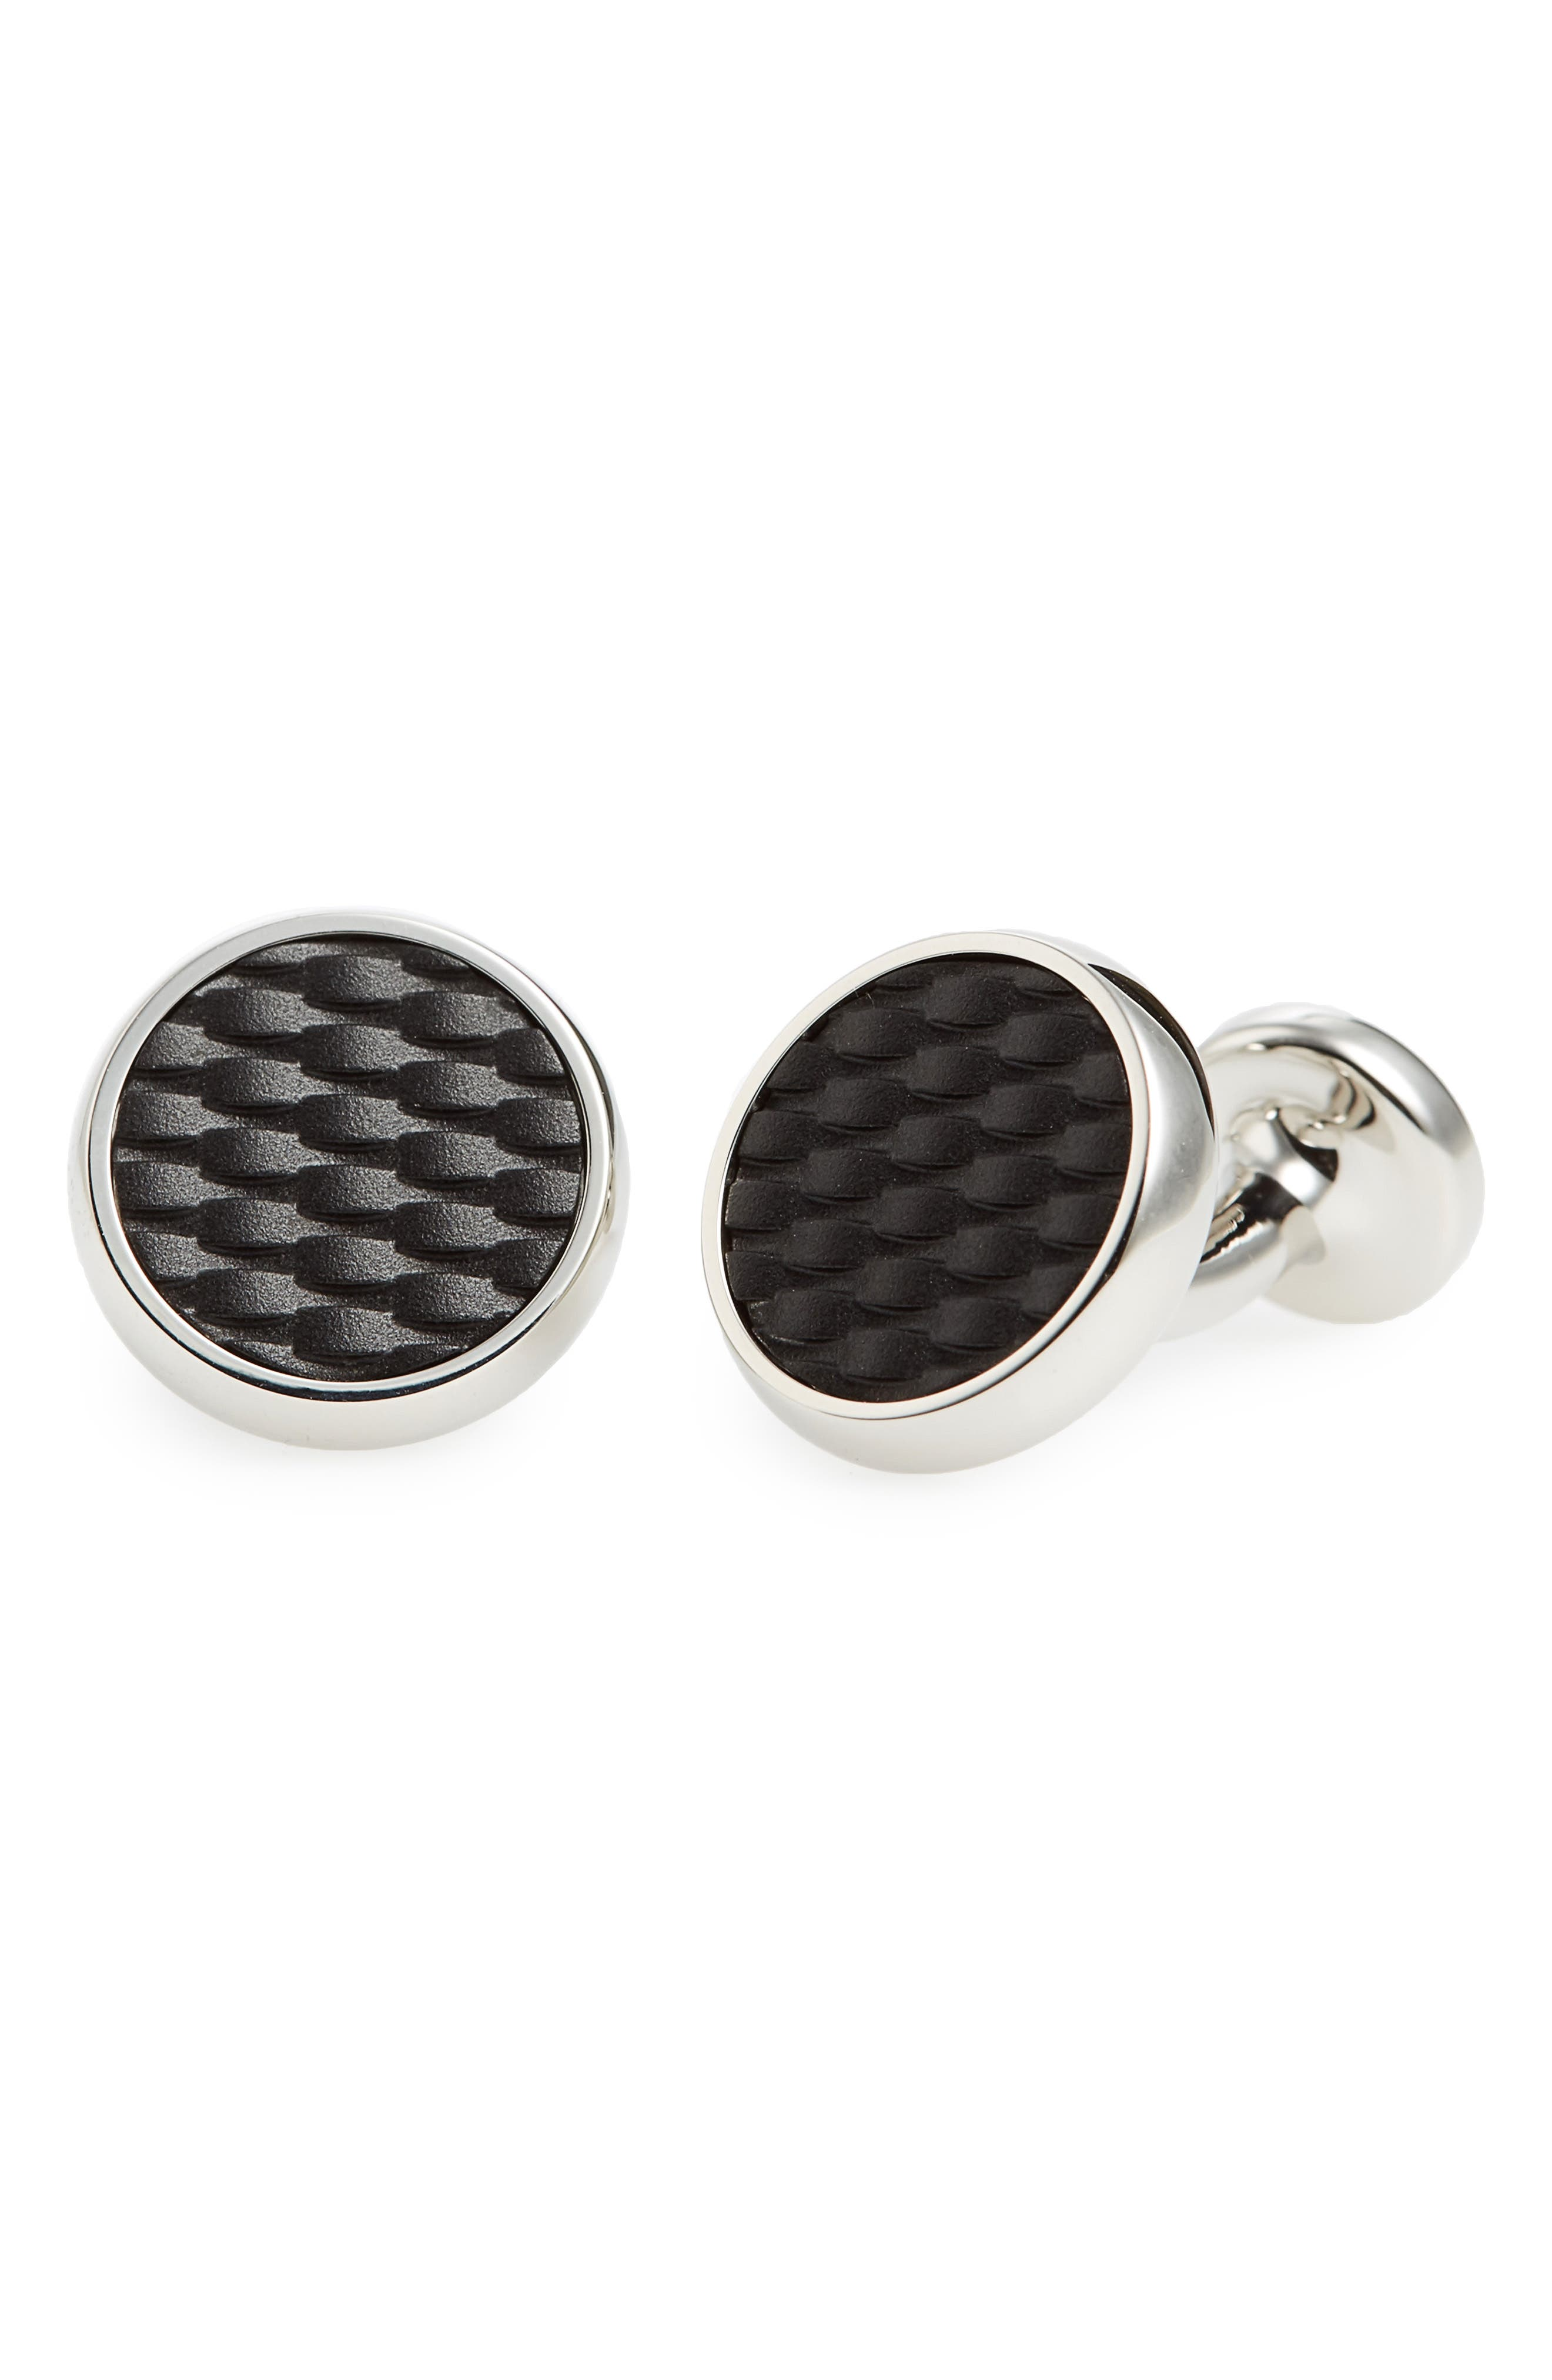 Achi Cuff Links,                         Main,                         color,